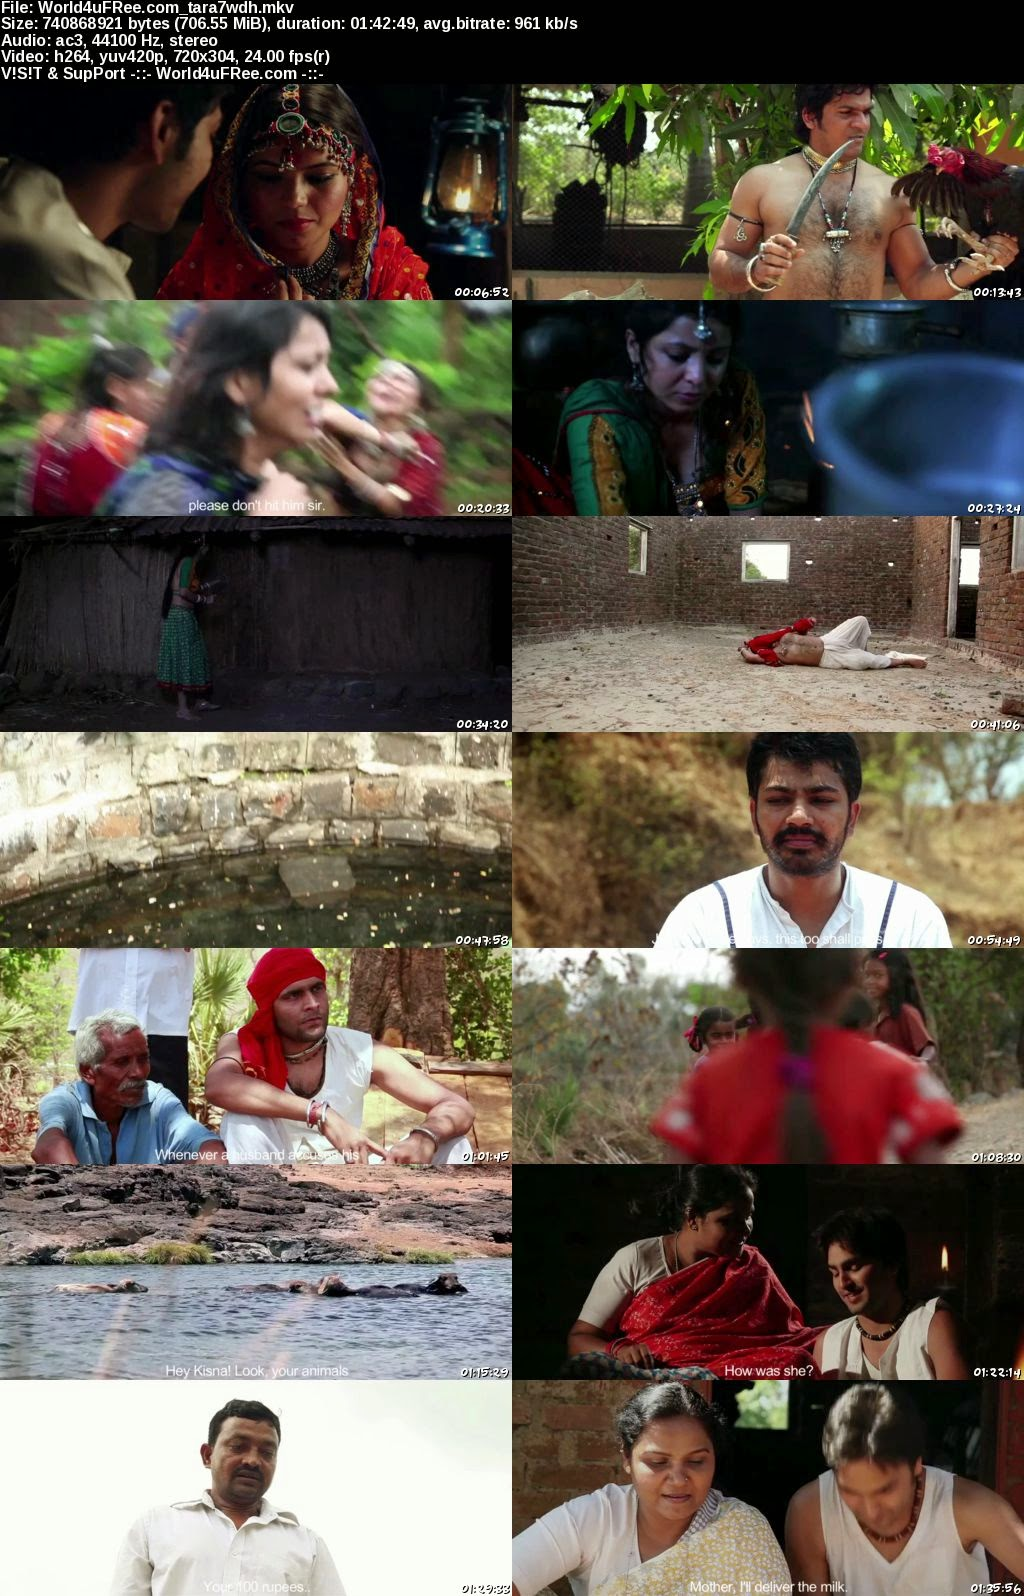 Tara The Journey of Love and Passion 2013 Hindi Movie Download / Online In 300MB at moviesmella.com